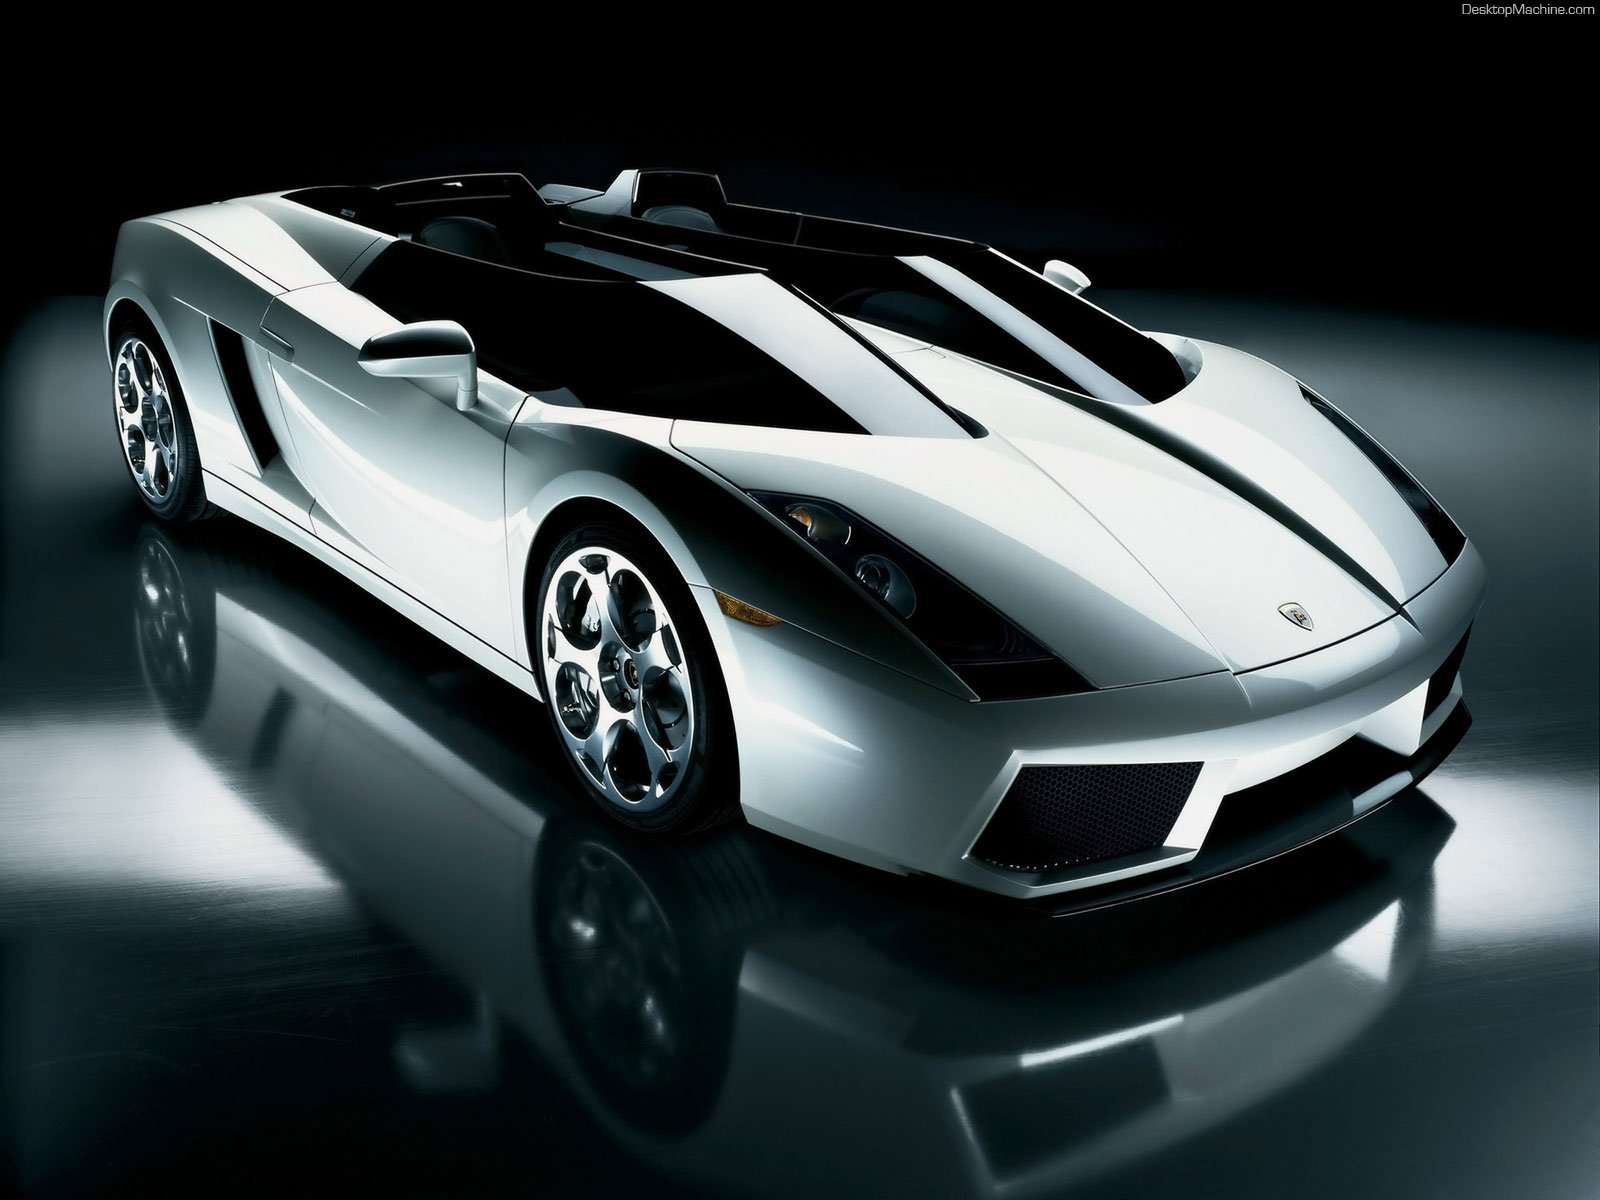 Vehicles - Lamborghini  Sport Car Lamborghini Gallardo Wallpaper